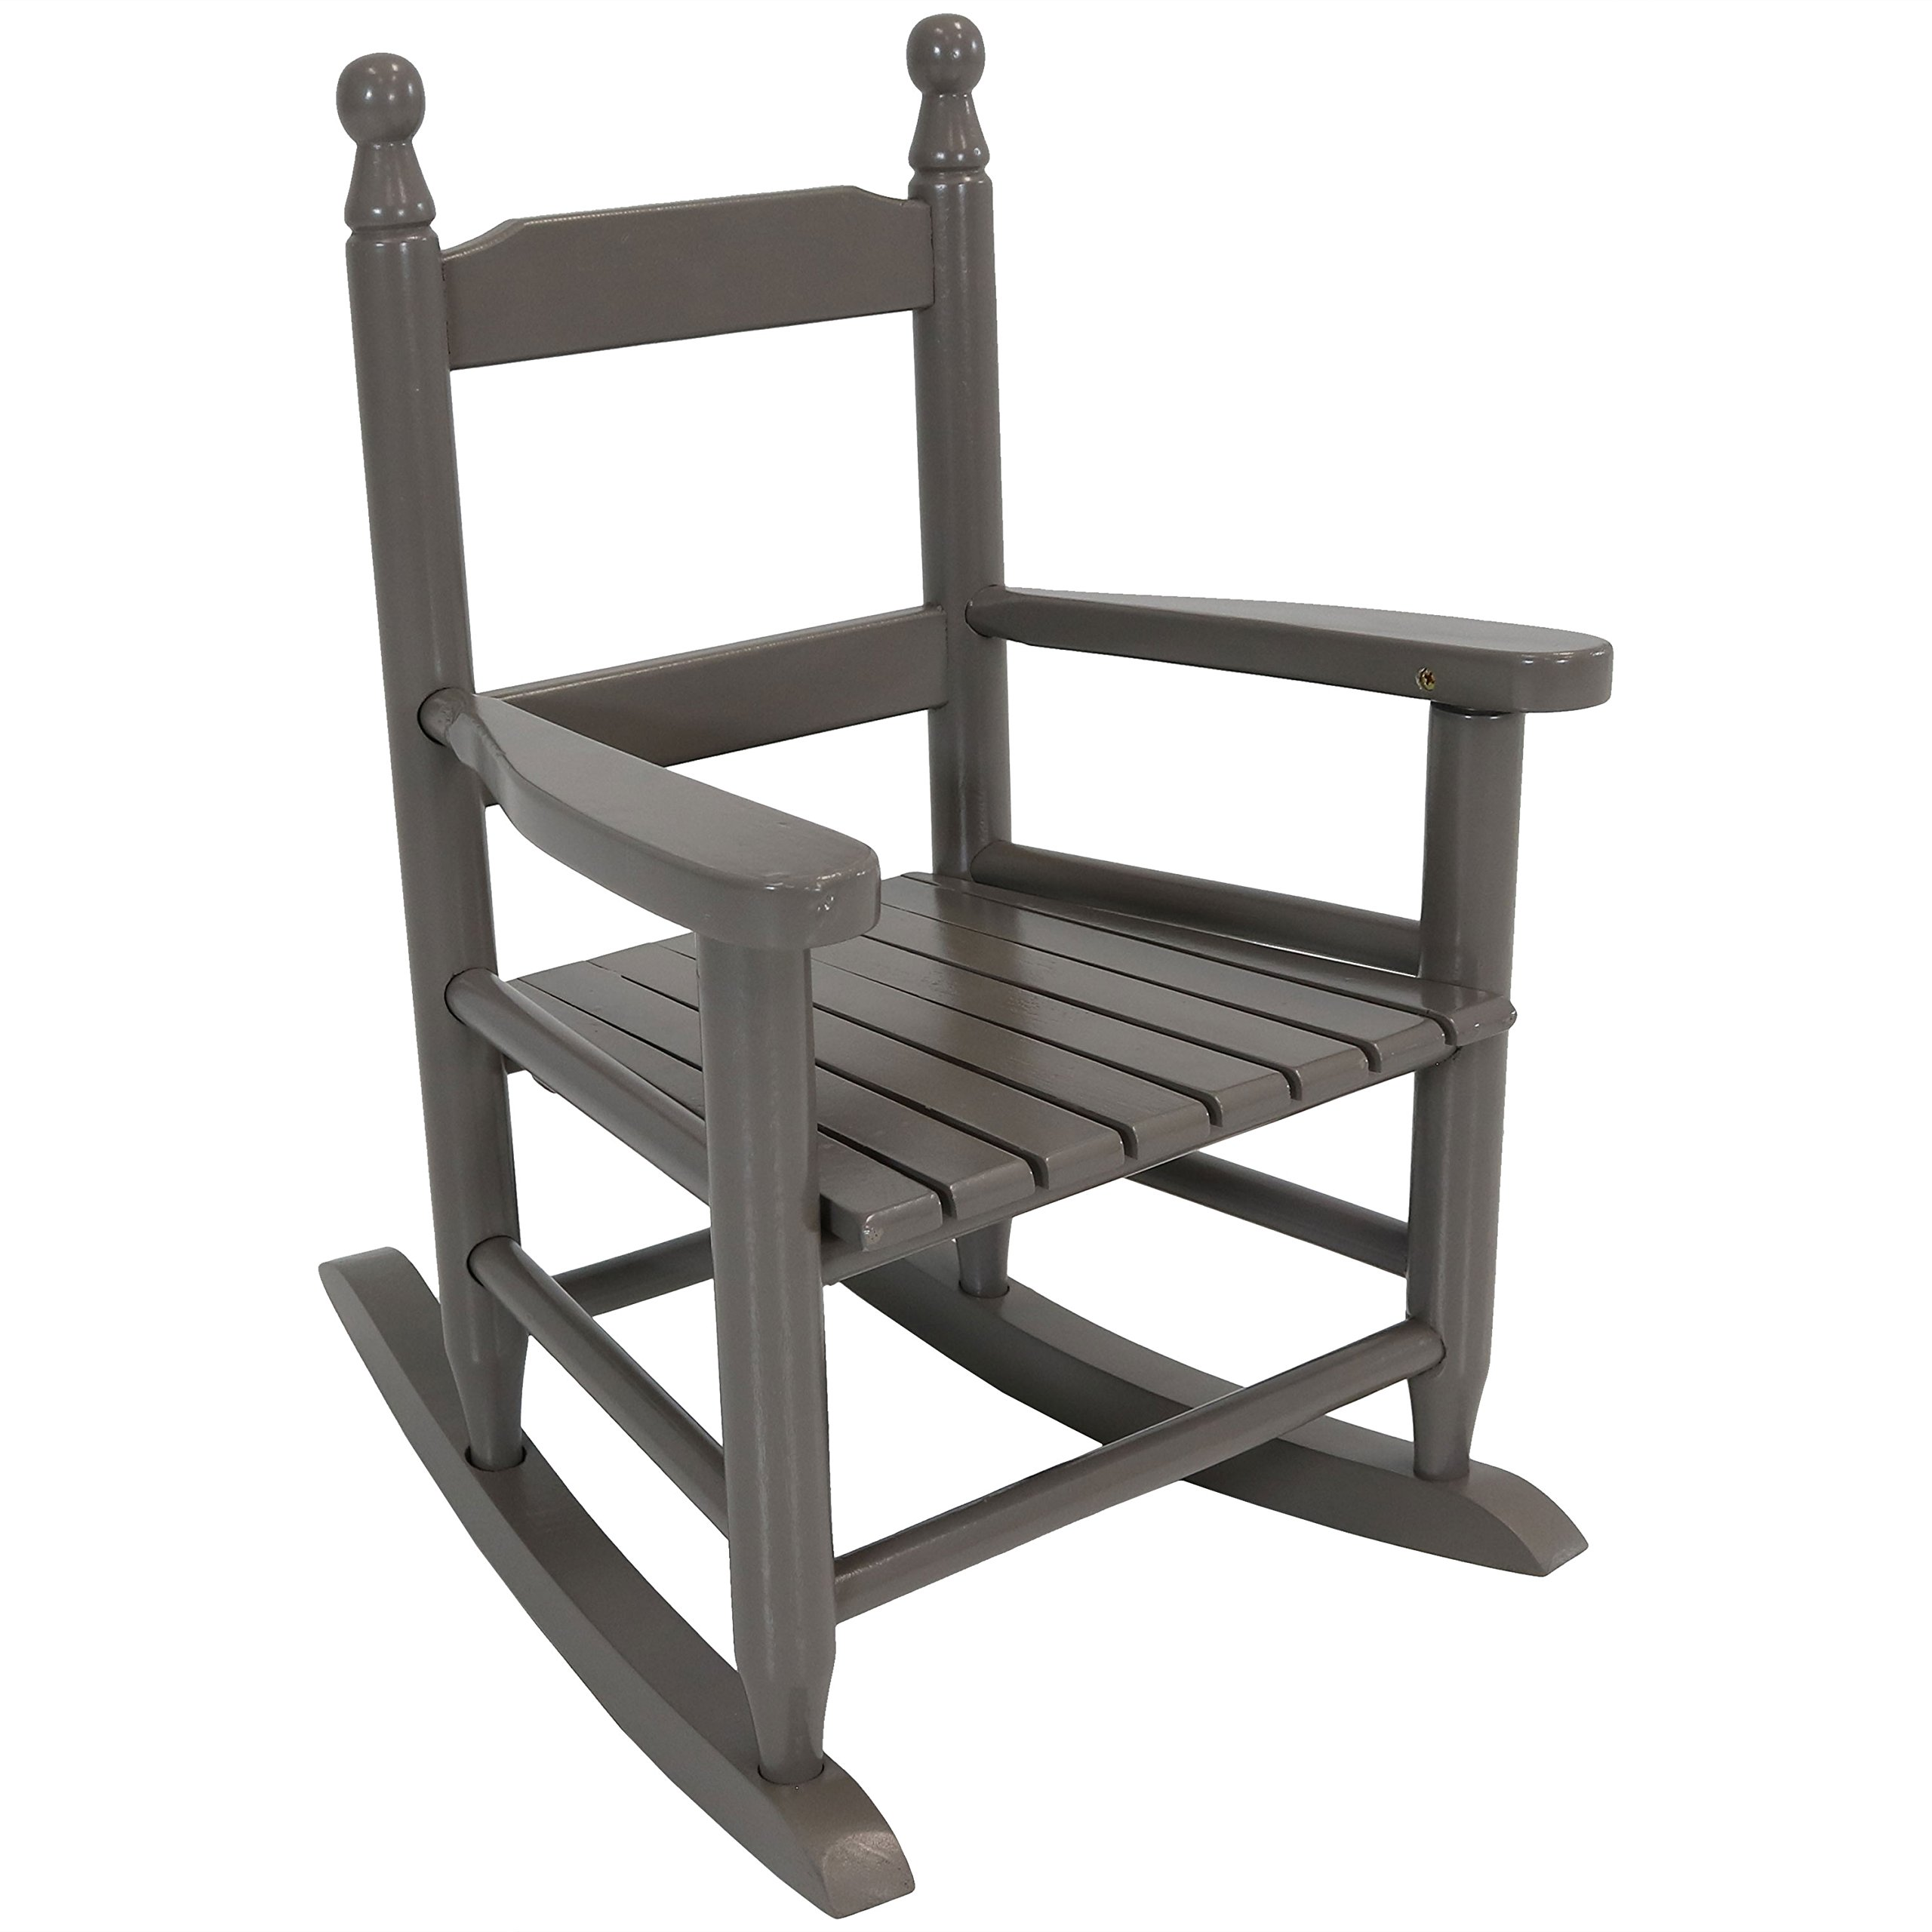 Sunnydaze Toddler Modern Wooden Rocking Chair with Non-Toxic Paint Finish, Fits Most Children Under 3 Feet Tall, Gray